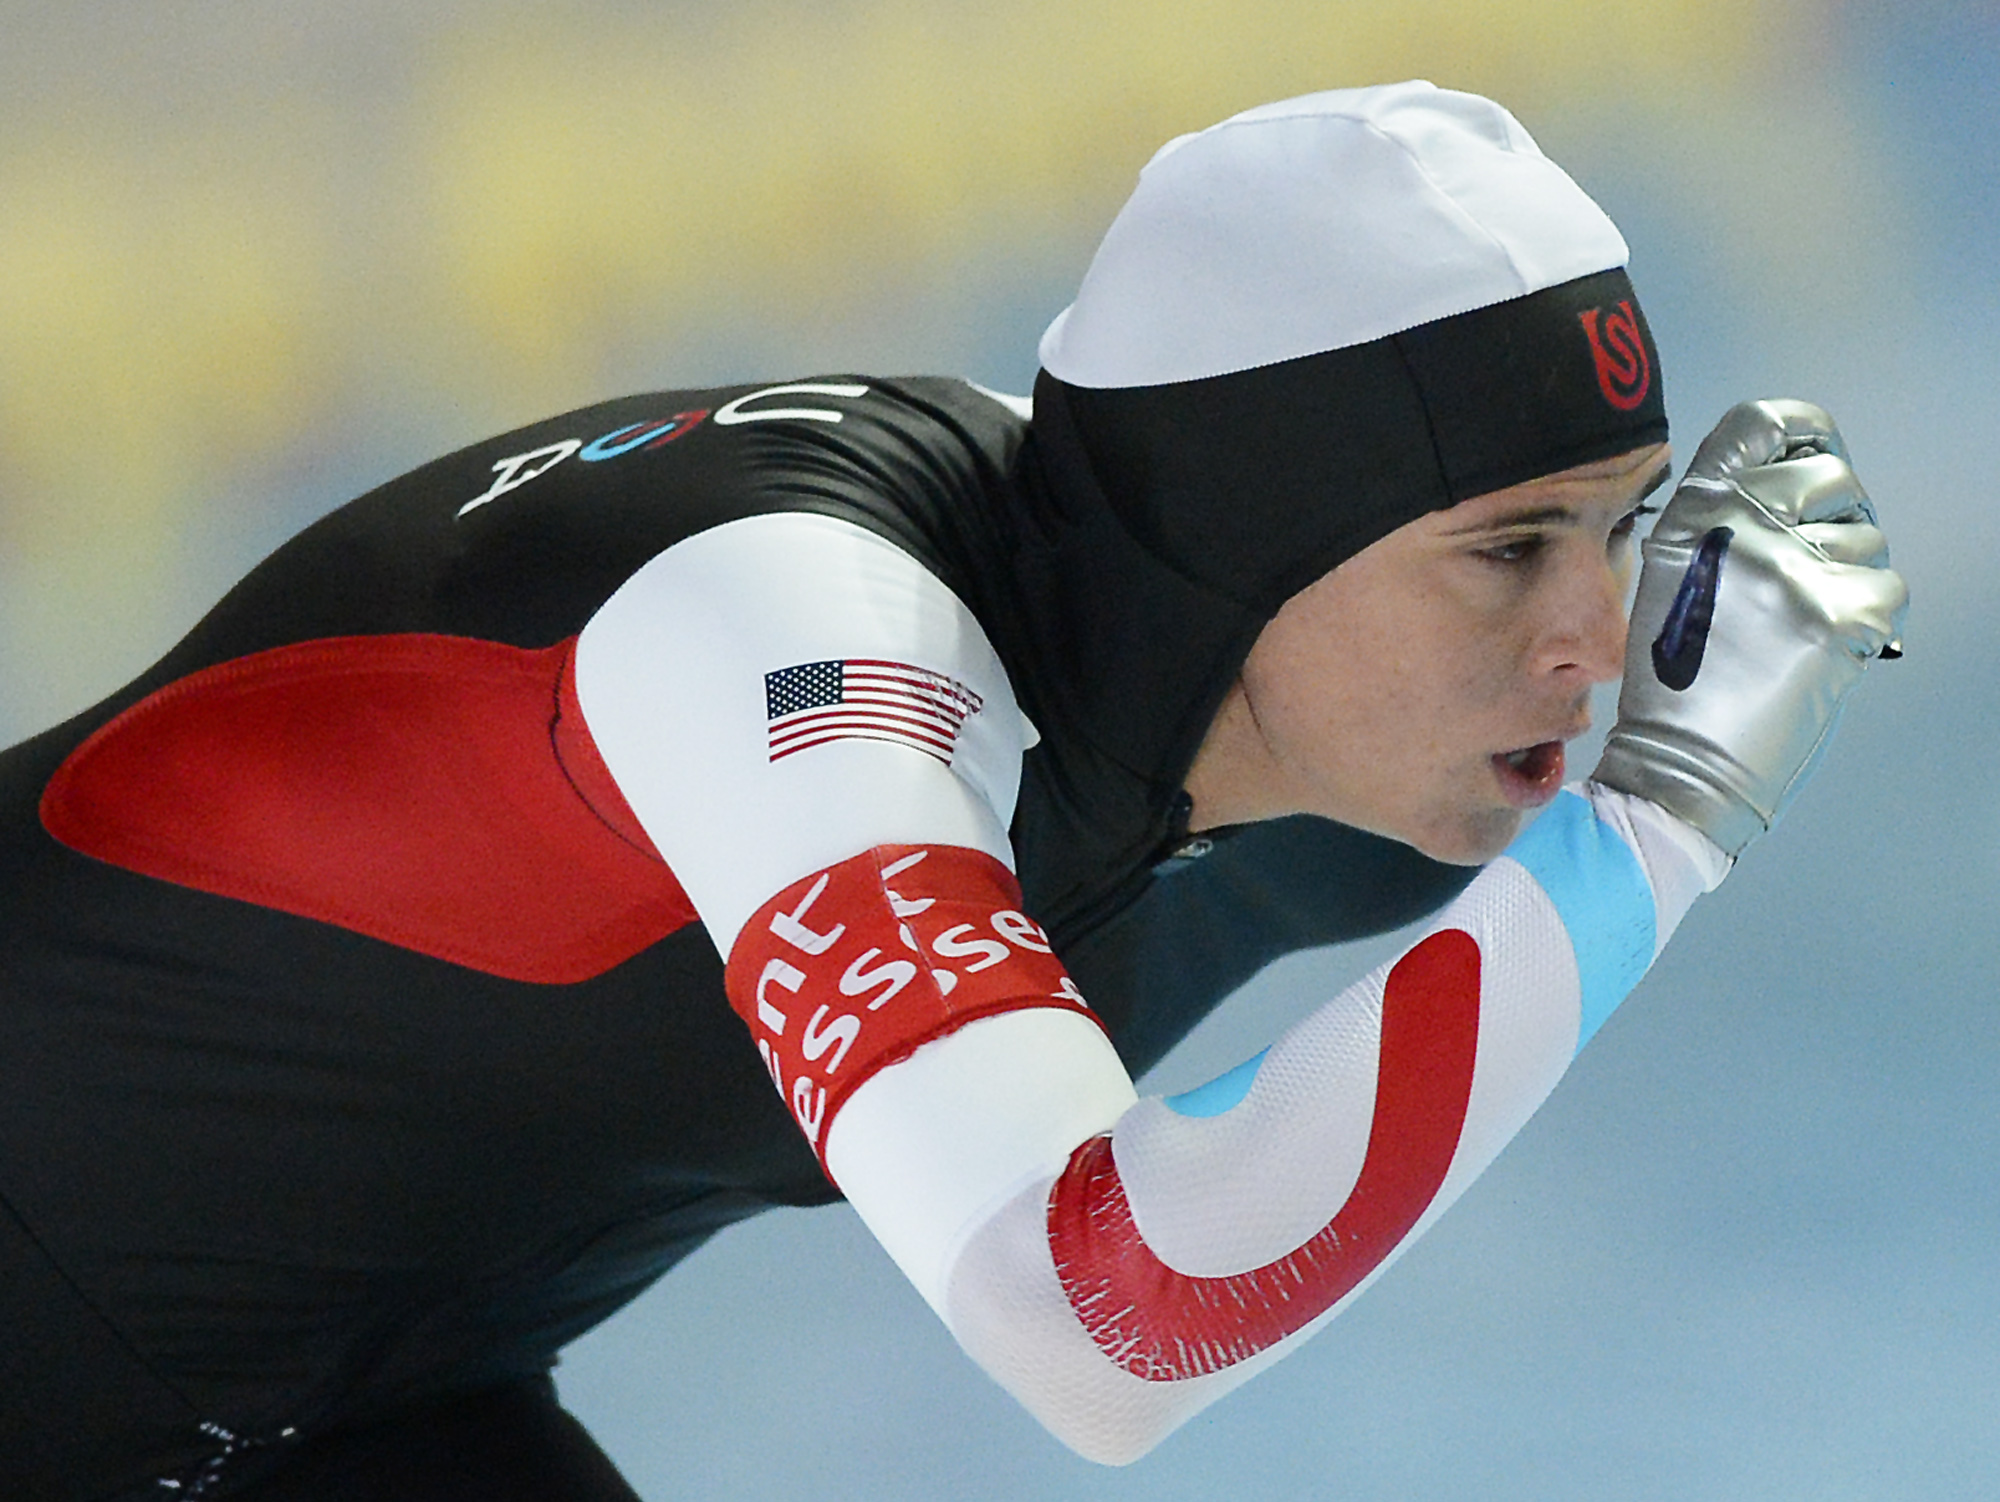 Winner Brittany Bowe of the US competes during the women's 1,000 meter distance at the Speed Skating World Cup in Erfurt, Germany, Sunday, March 3, 2013. (AP Photo/Jens Meyer)